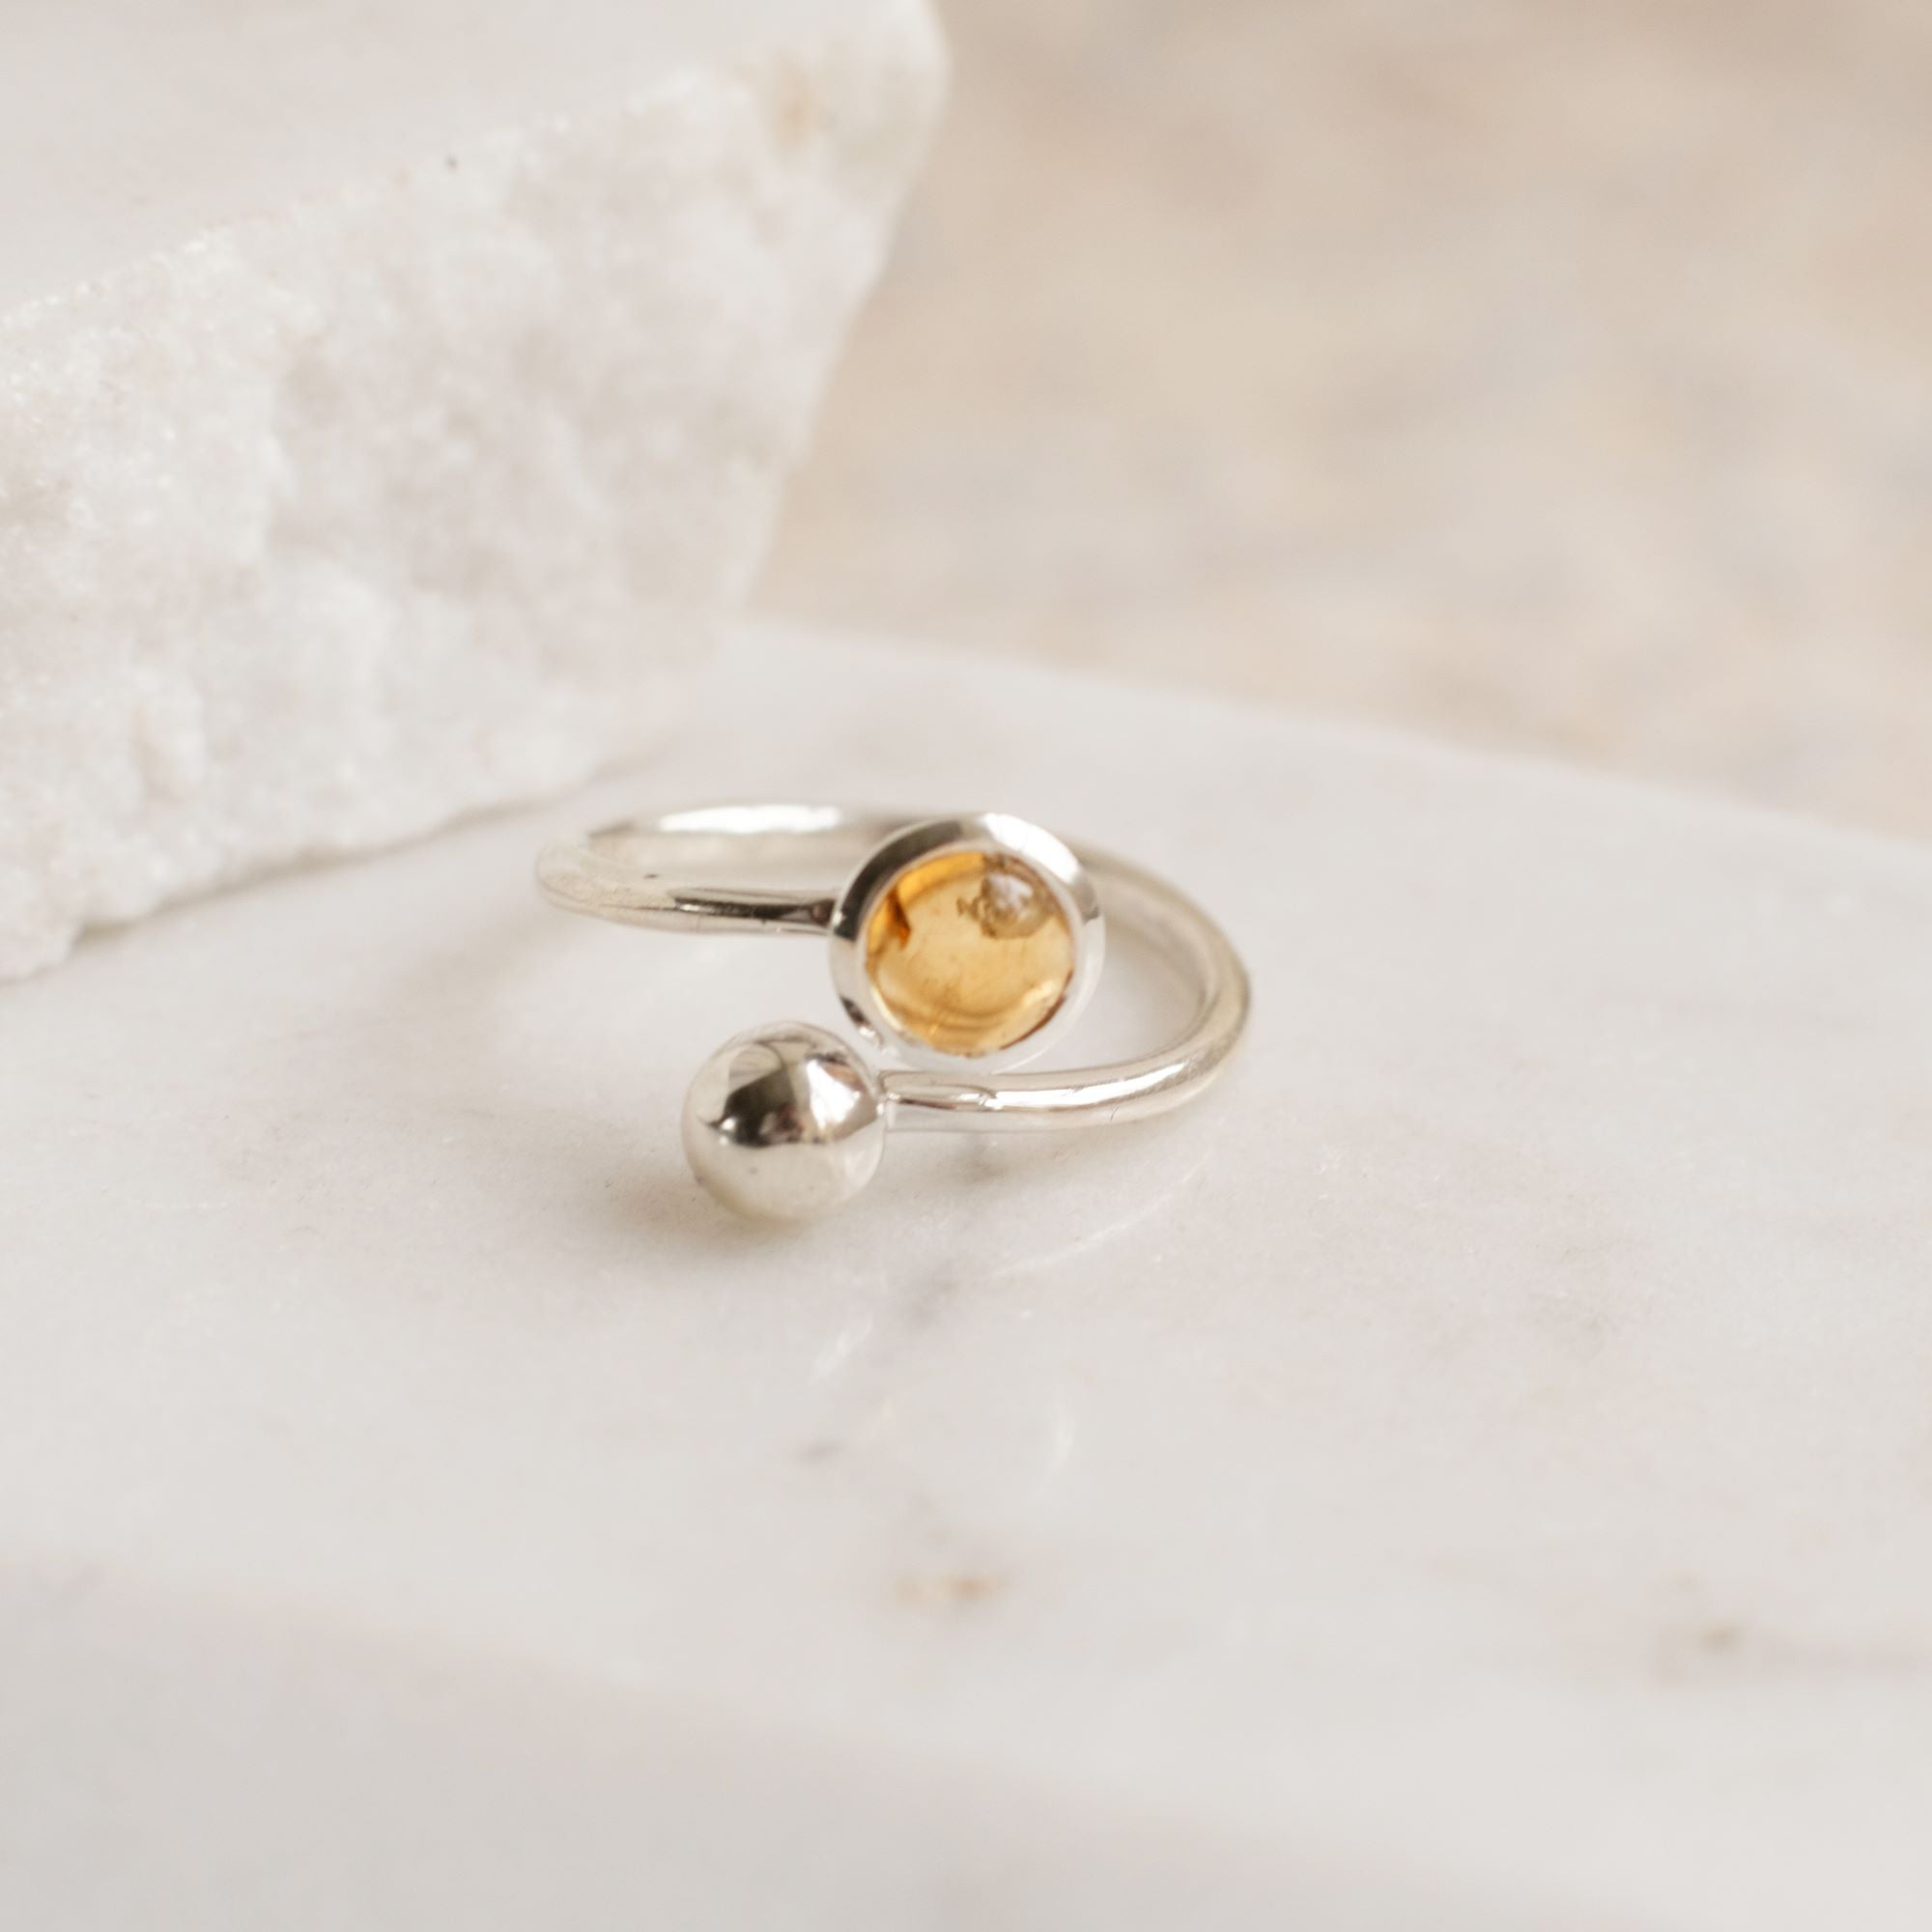 Adjustable Birthstone Ring November: Sterling Silver and Citrine